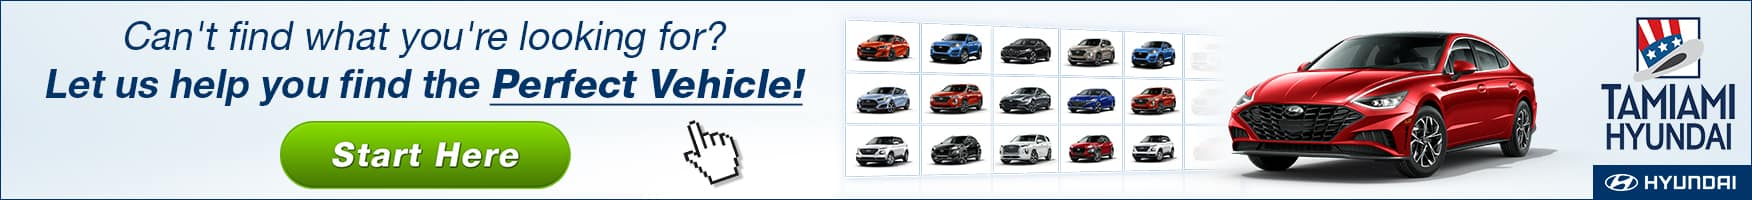 Can't Find What You're Looking For? Let Tamiami Hyundai Help You Find Your Perfect Vehicle!